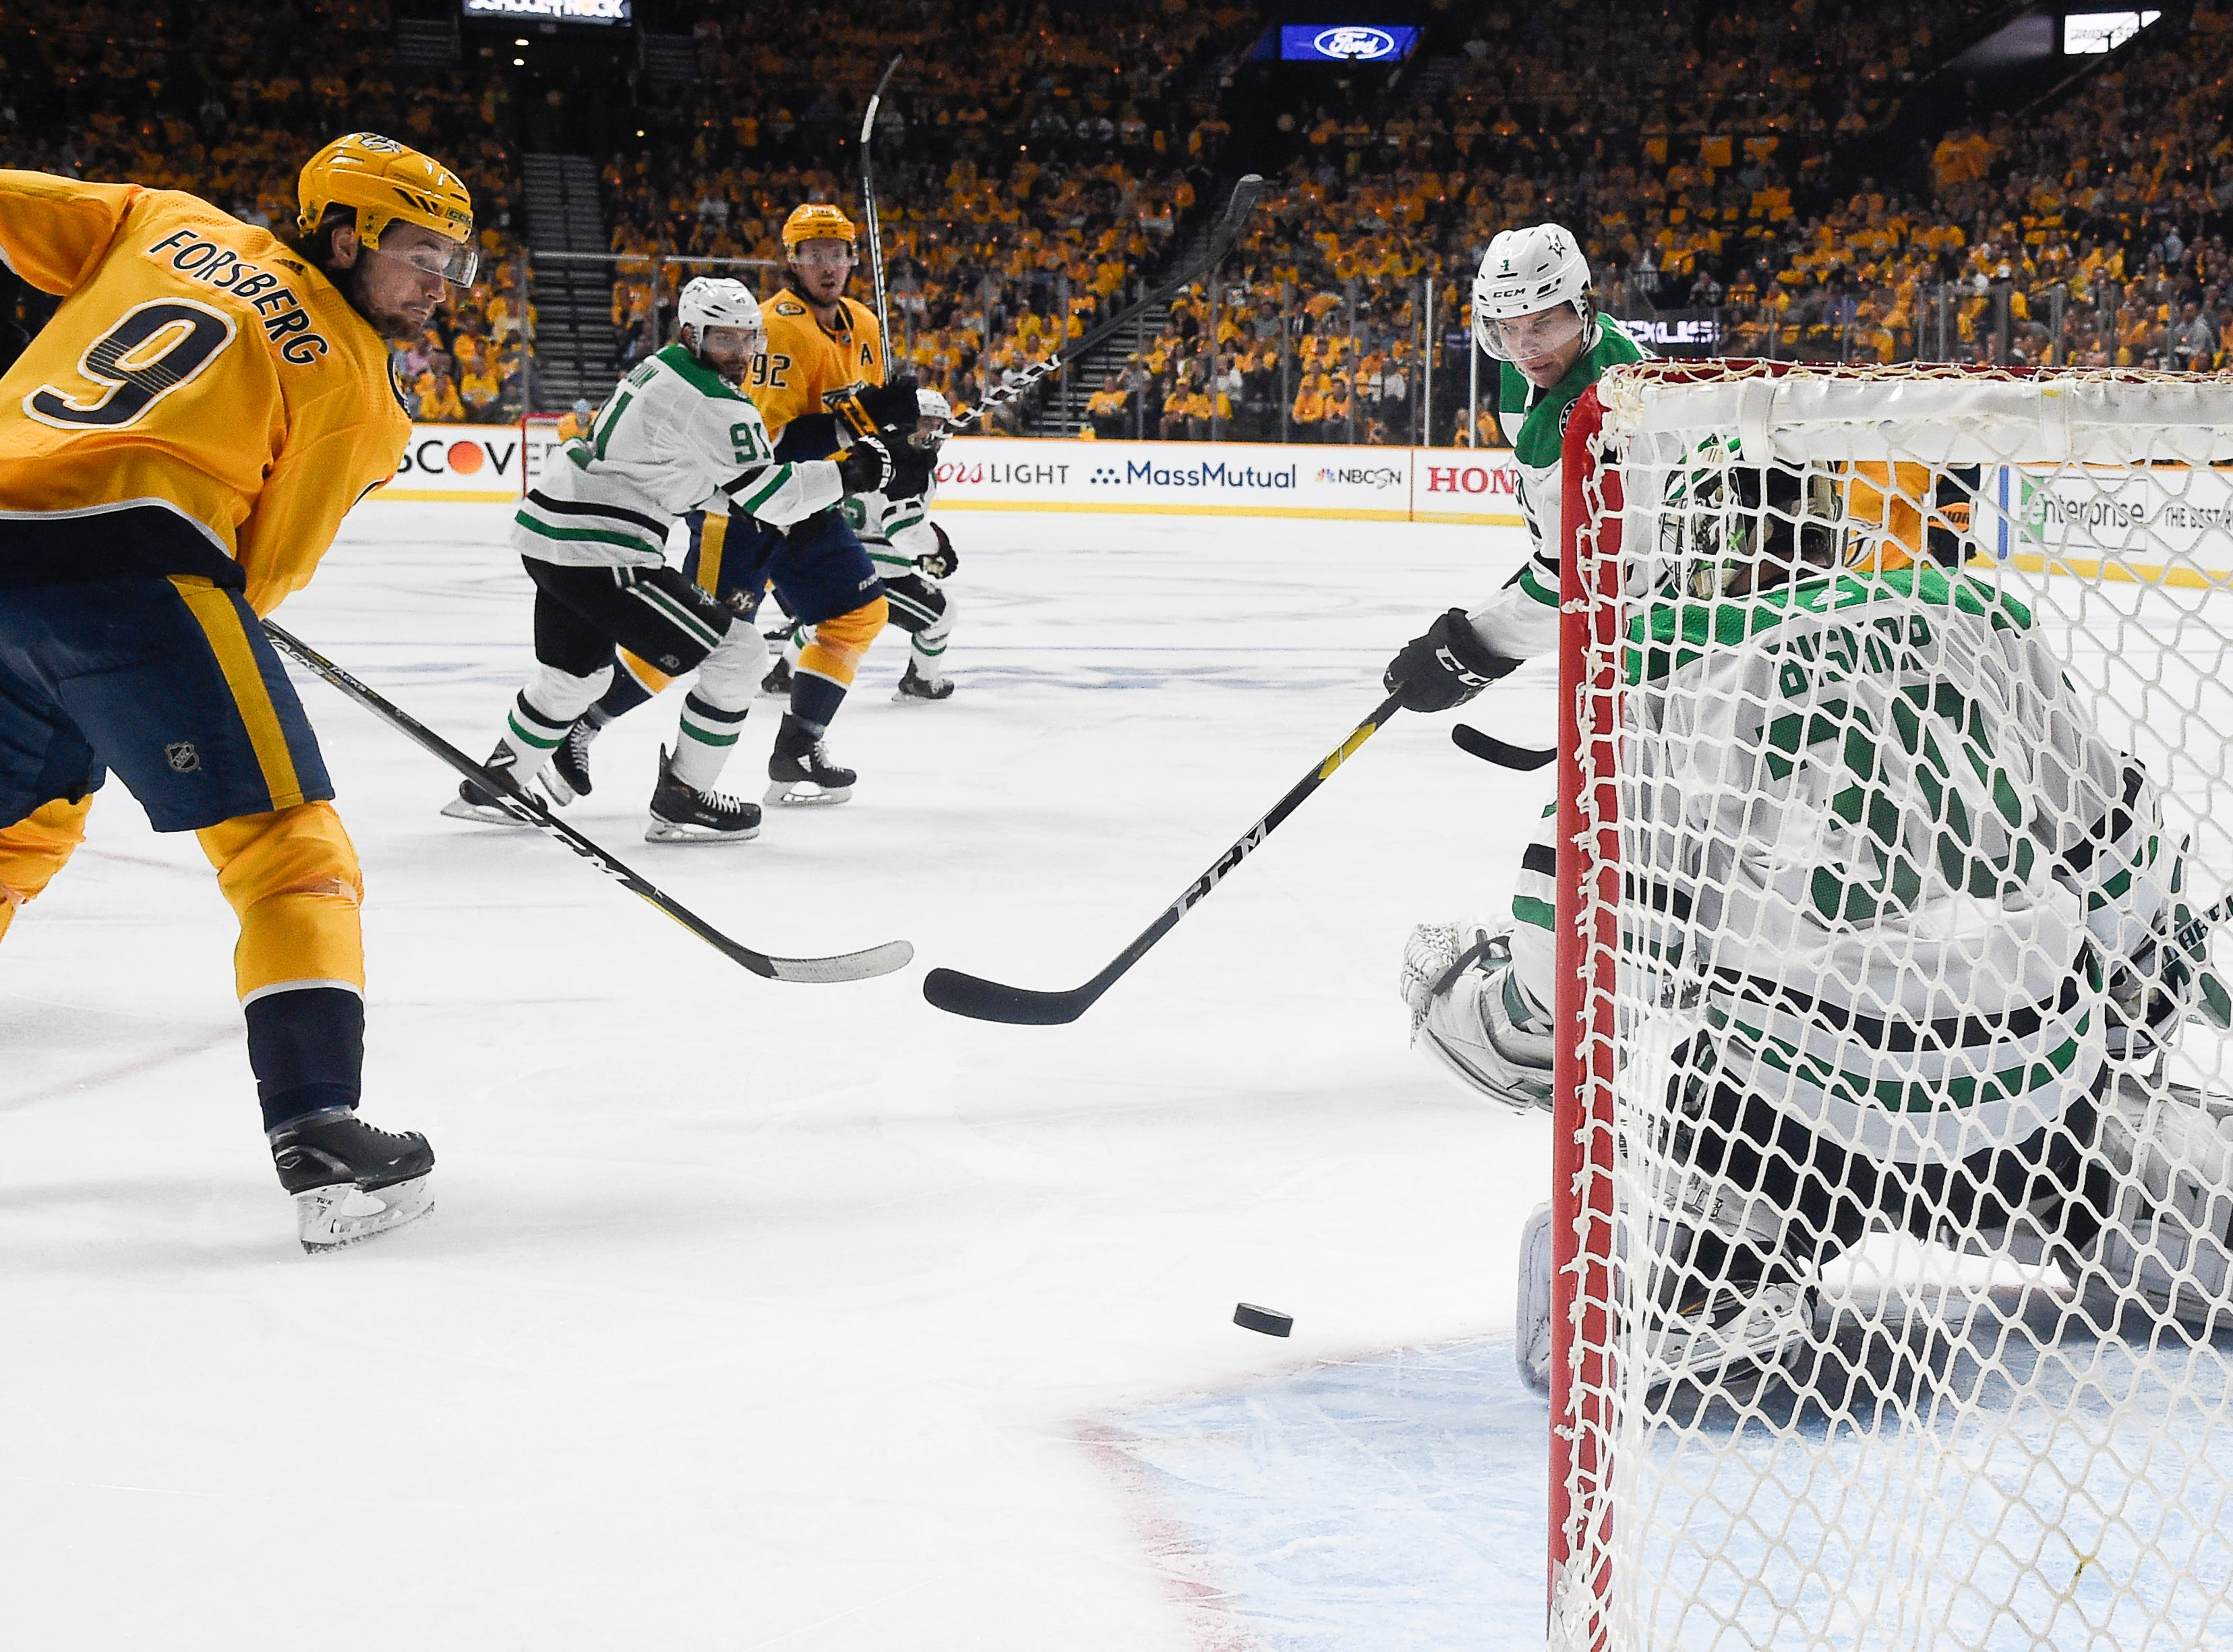 Nashville Predators left wing Filip Forsberg (9) tries to get the puck past Dallas Stars goaltender Ben Bishop (30) during the first period of the divisional semifinal game at Bridgestone Arena Wednesday, April 10, 2019 in Nashville, Tenn.